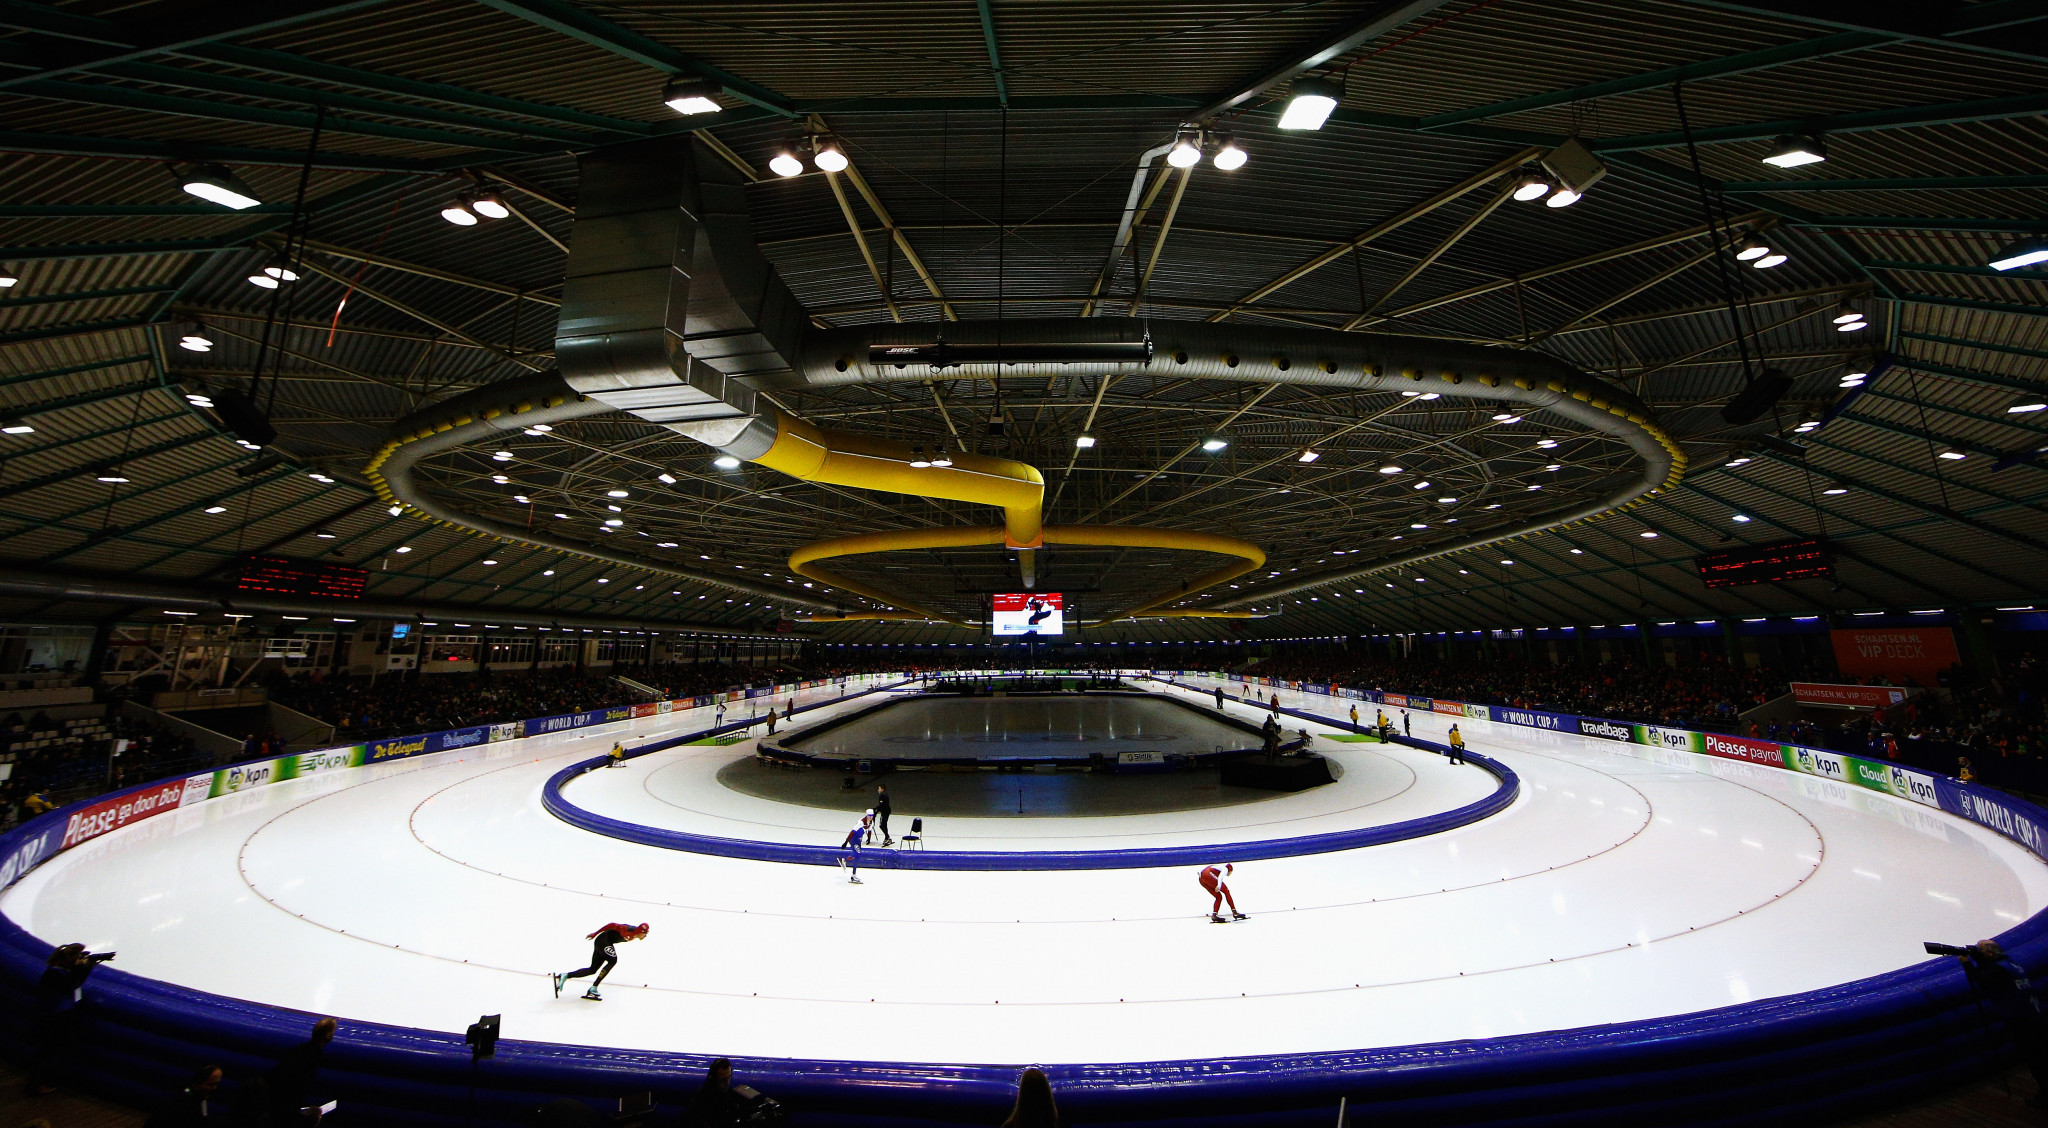 Heerenveen provisionally awarded 2023 World Speed Skating Championships